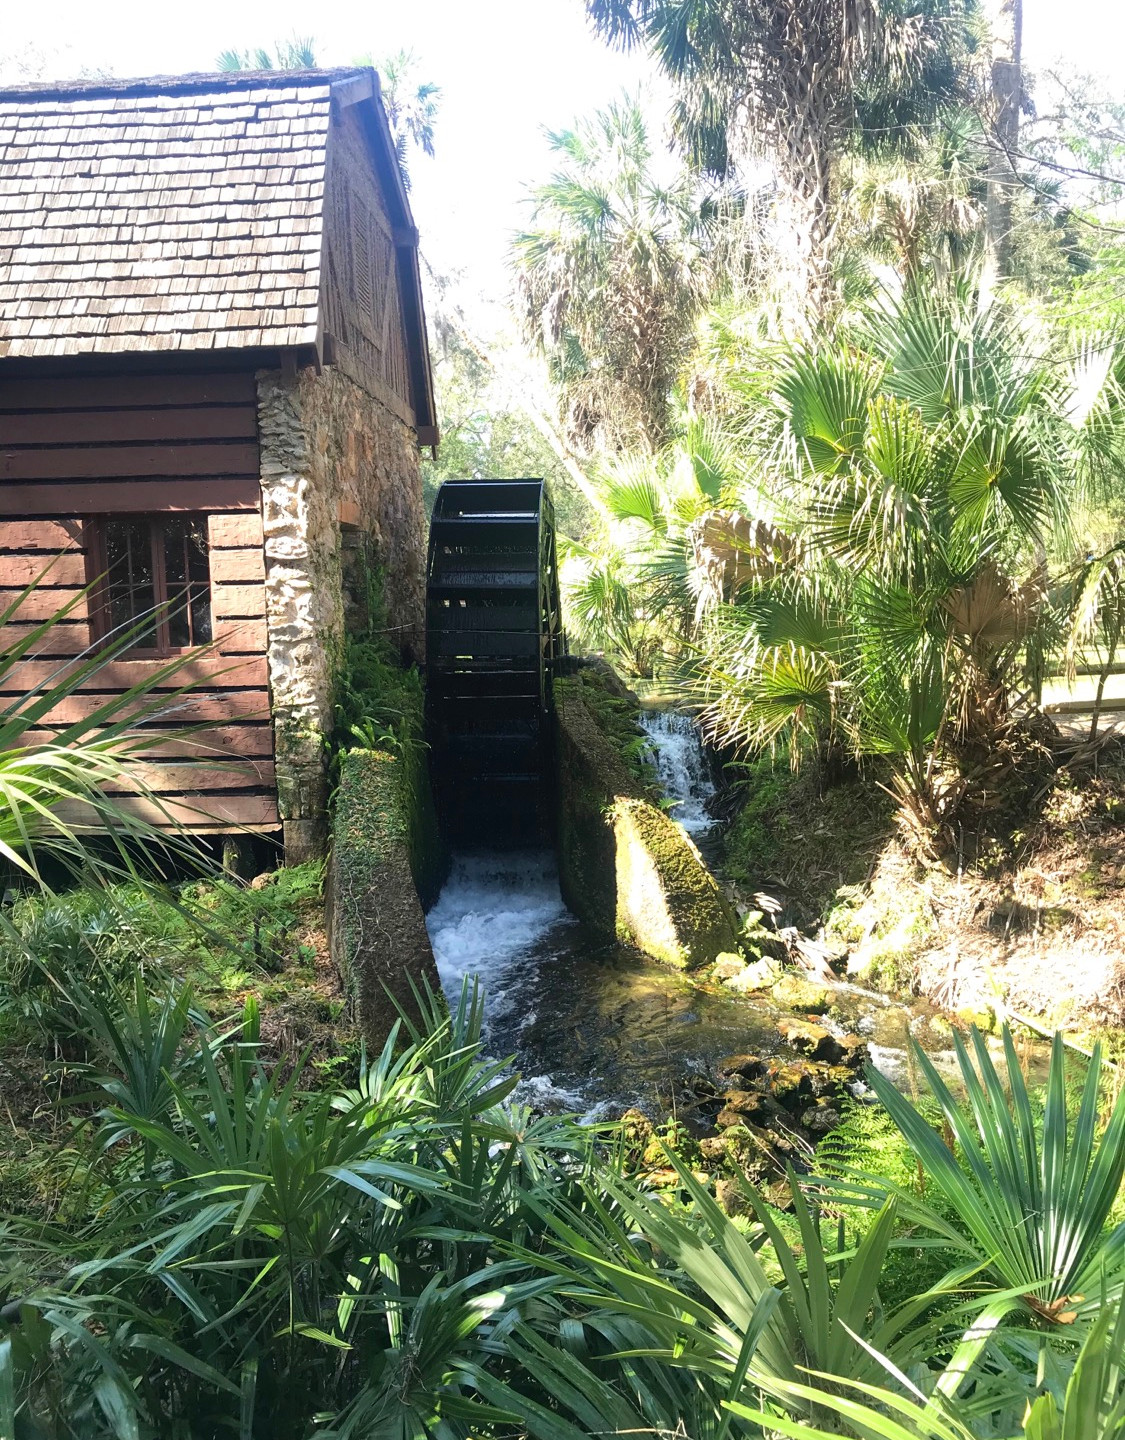 Old grist mill built by the CCC